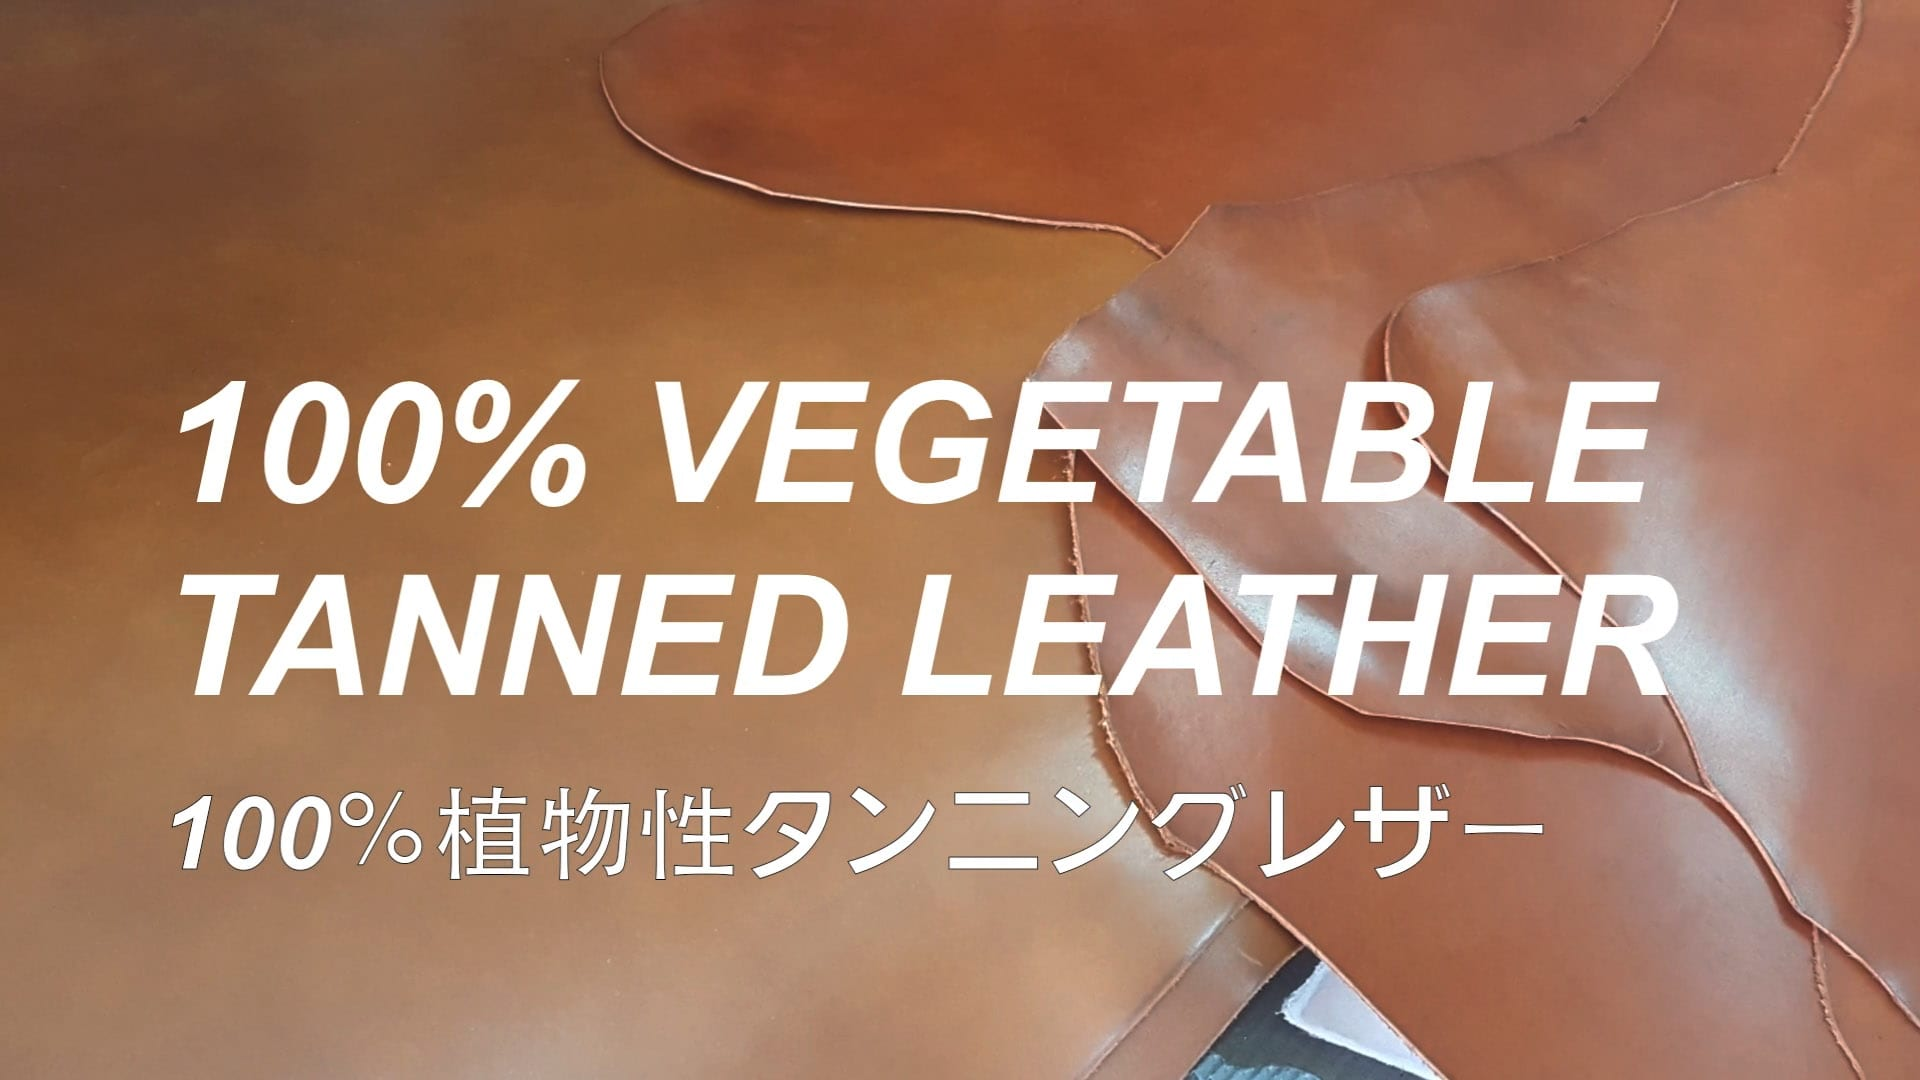 The art of vegetable-tanning leather.